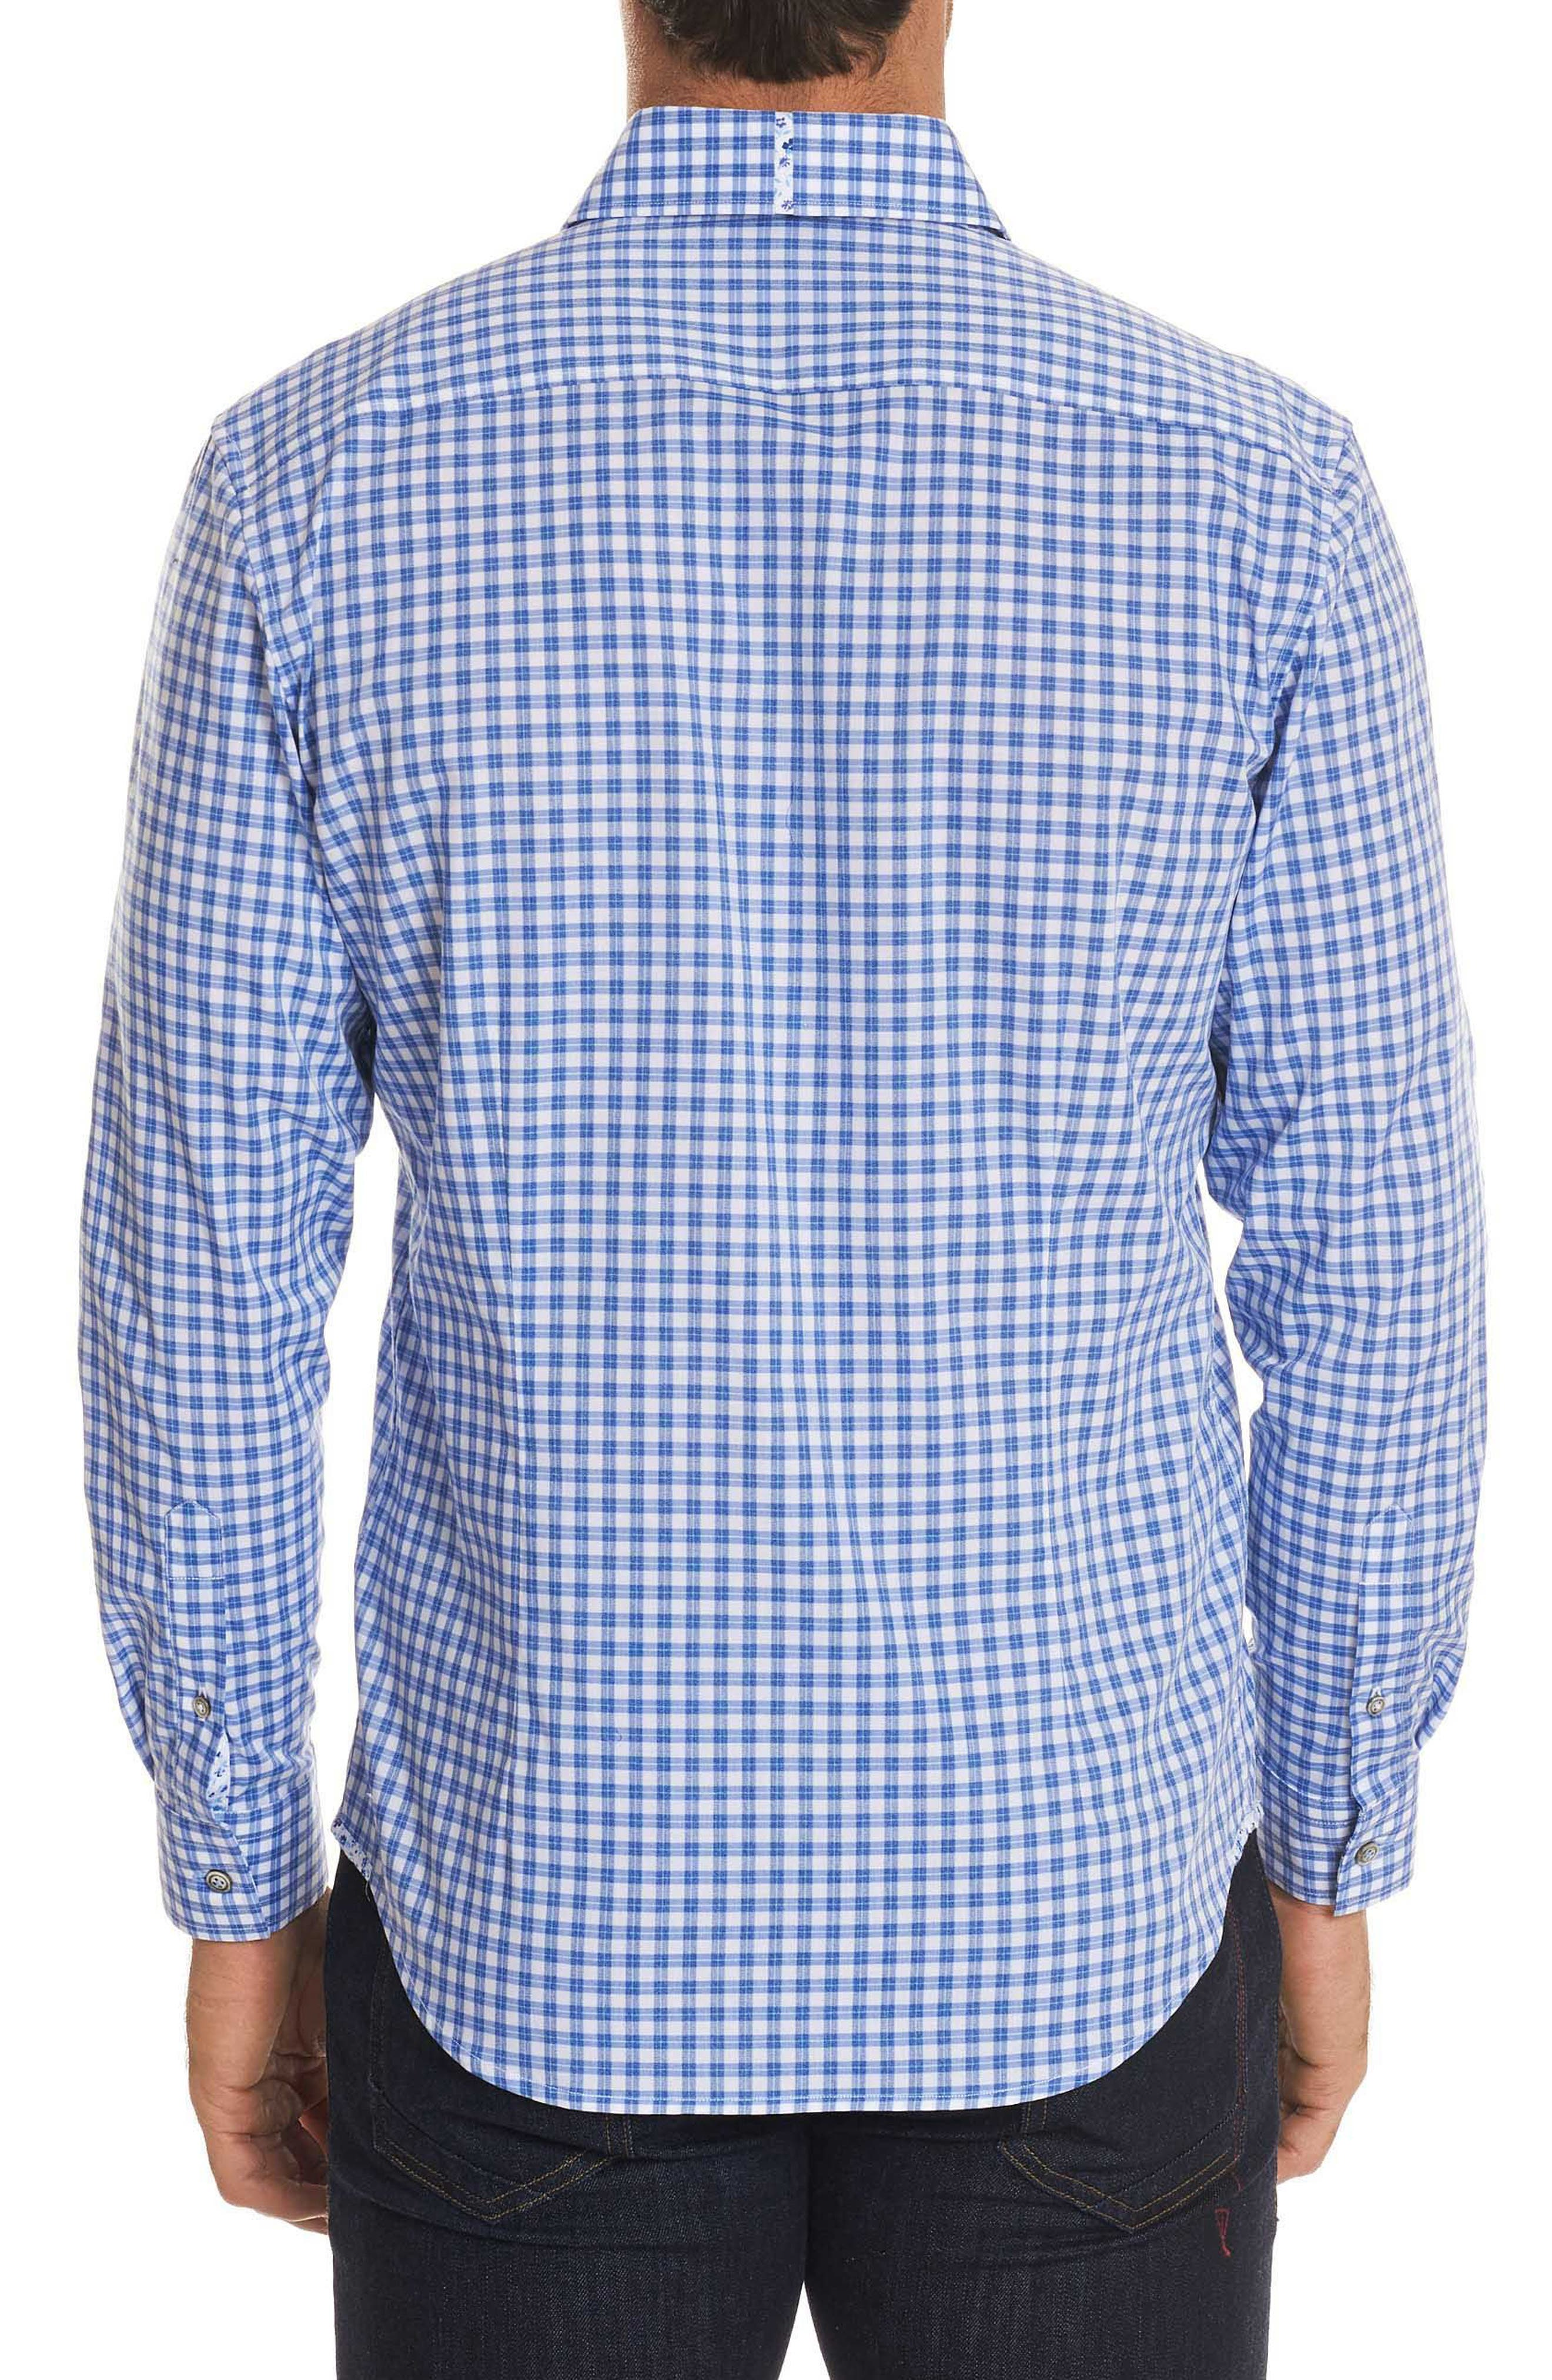 Rye Tailored Fit Check Sport Shirt,                             Alternate thumbnail 2, color,                             400